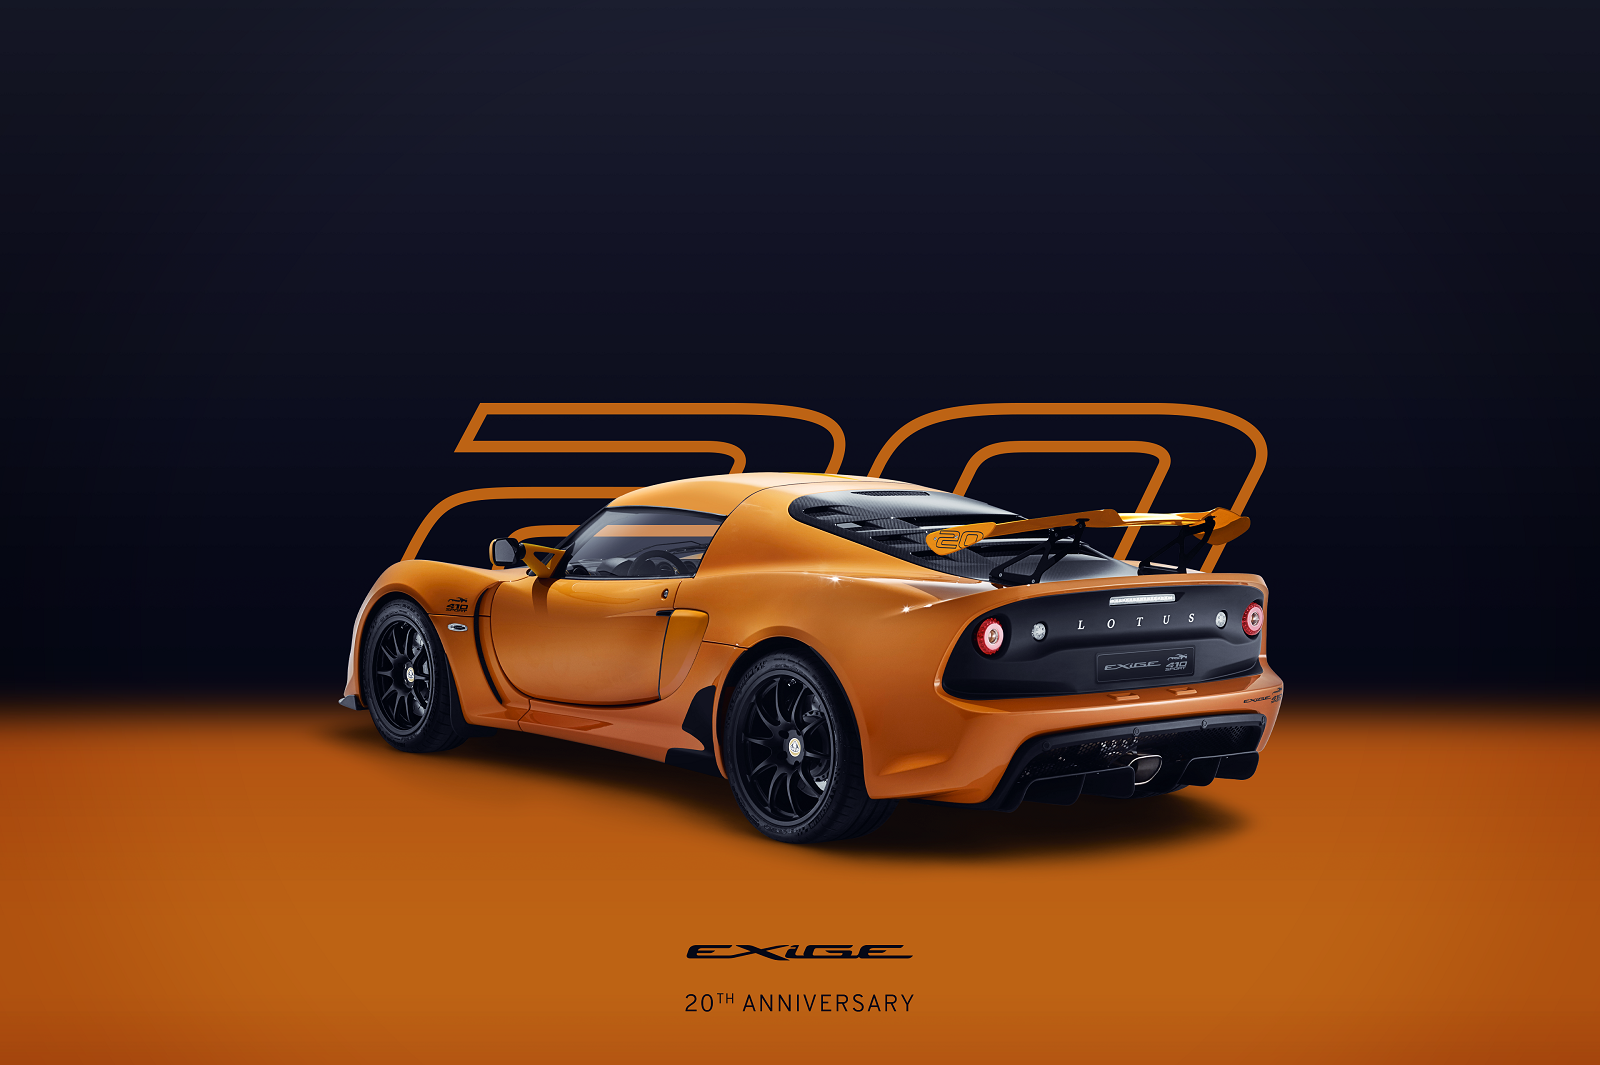 Exige-20th-Anniversary_Orange_Square_Rear